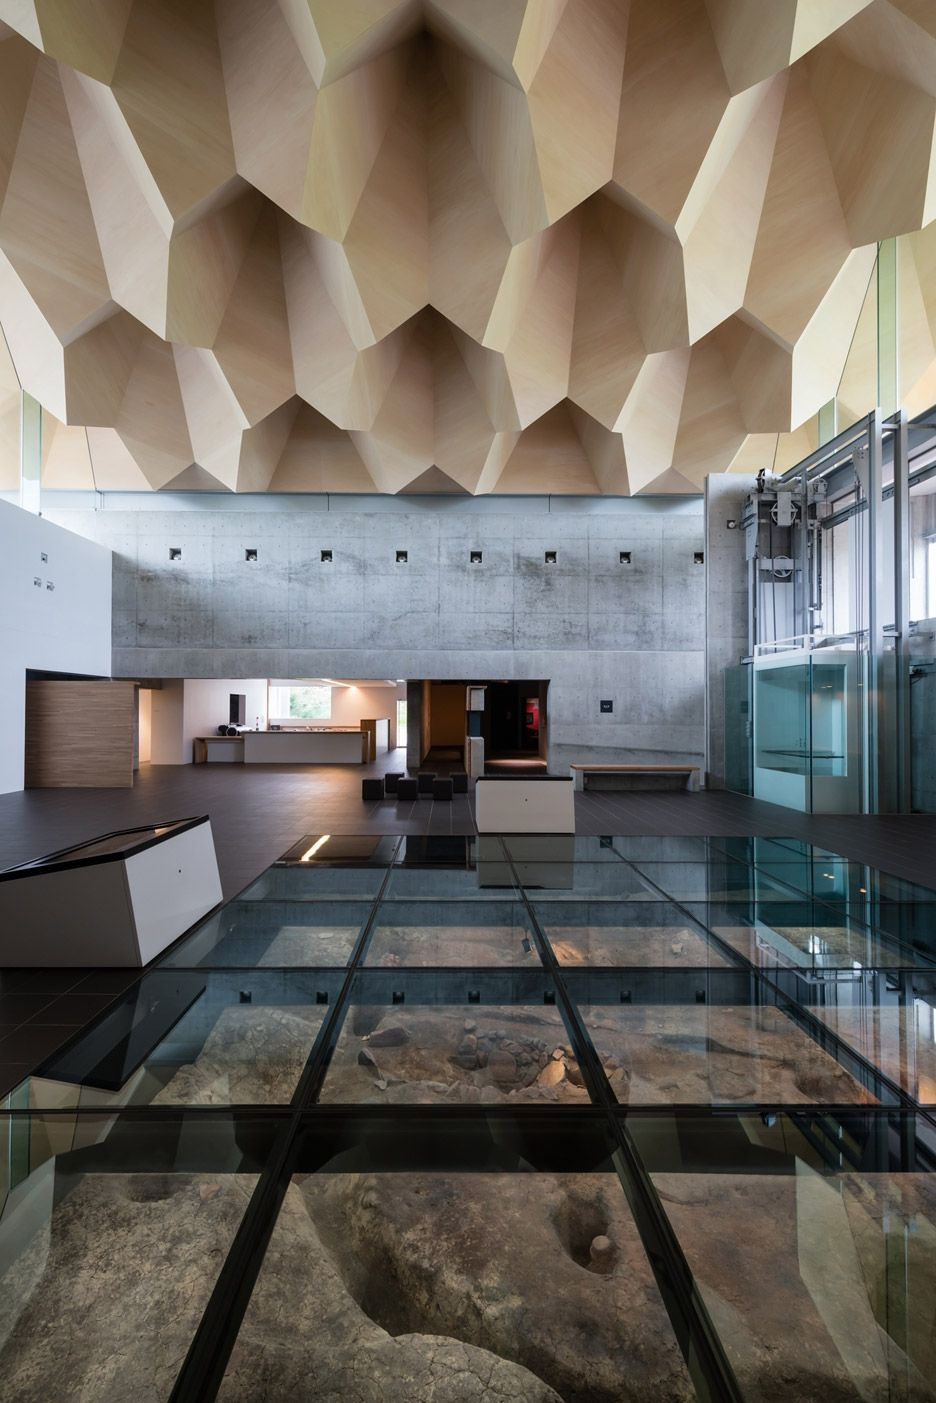 100 best A: Museums, Galleries images on Pinterest | Architecture ...